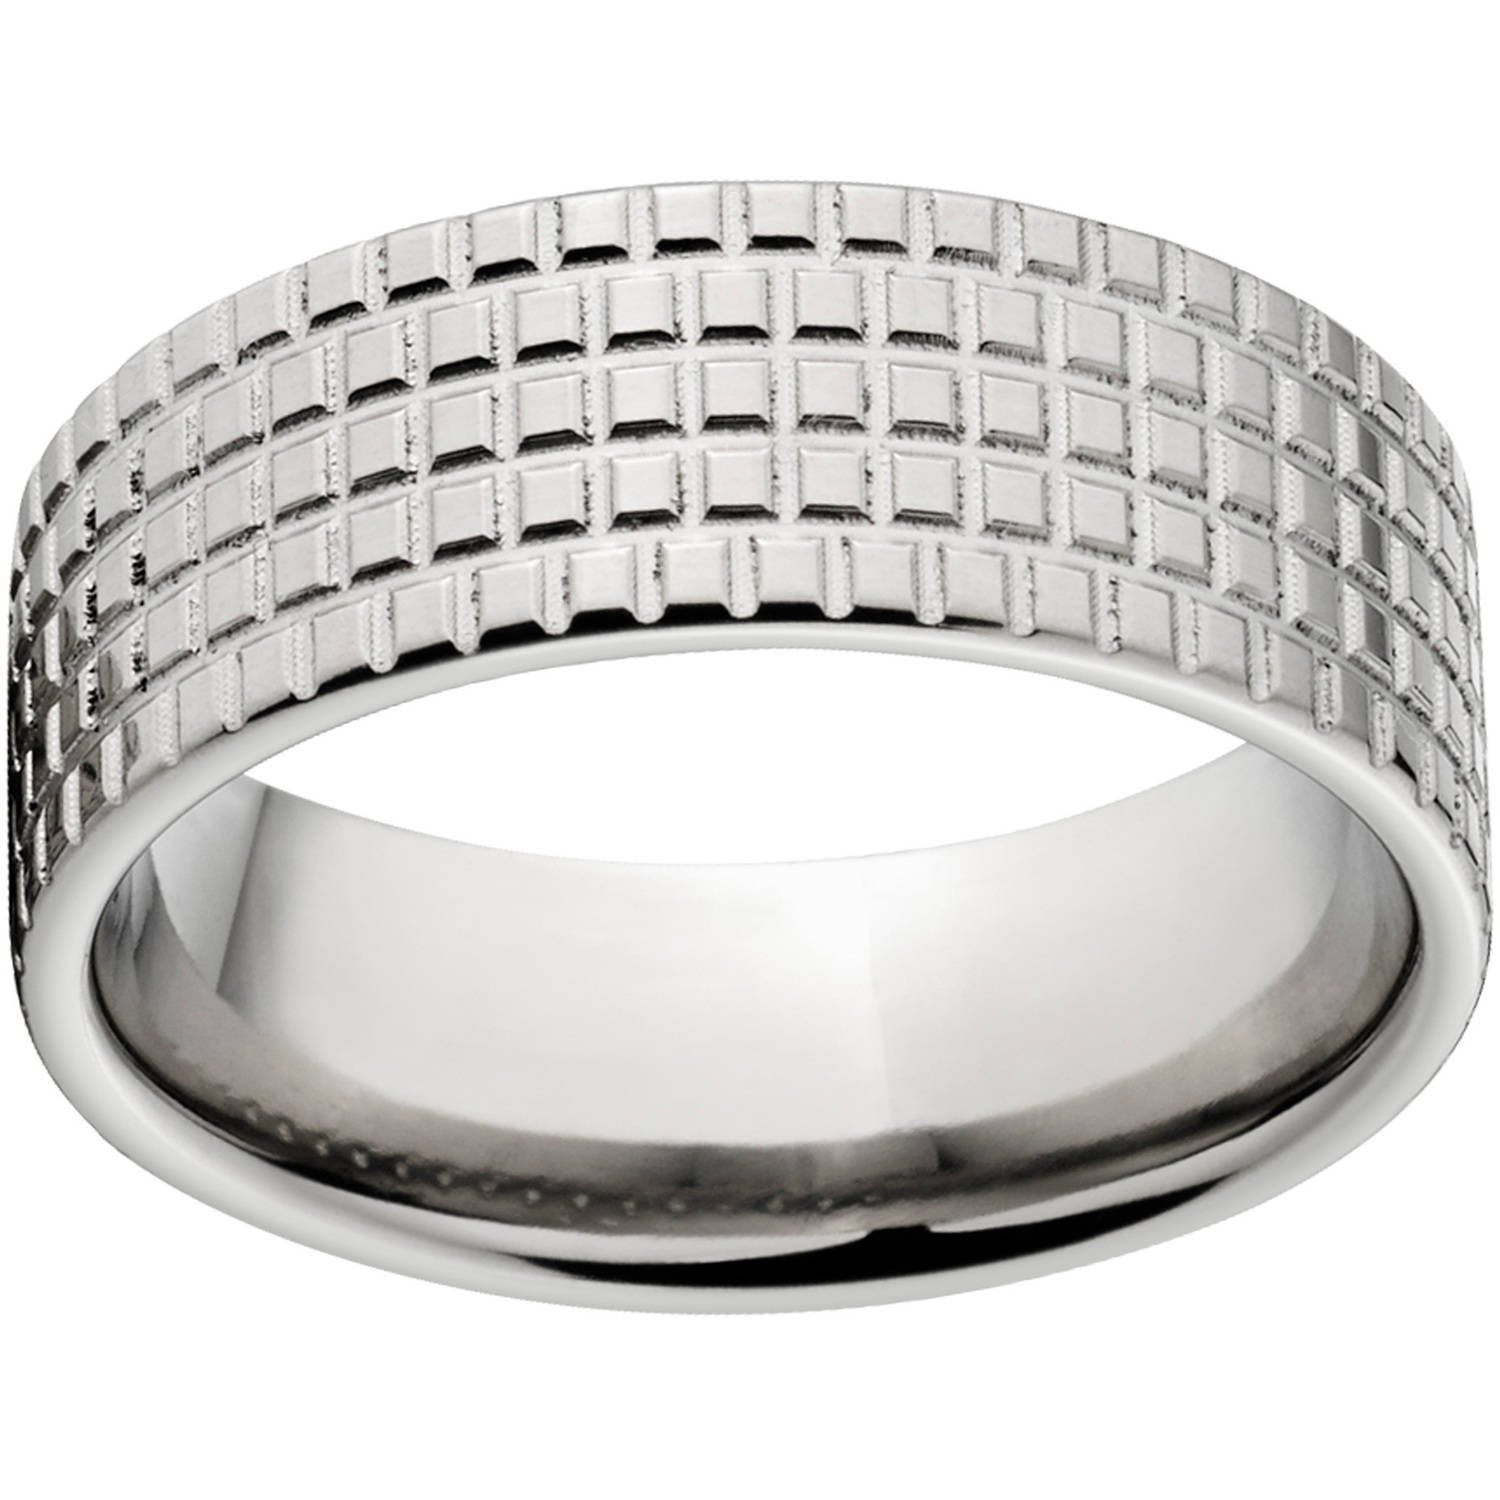 Custom Men's Tire Tread 8mm Stainless Steel Wedding Band with Comfort Fit Design